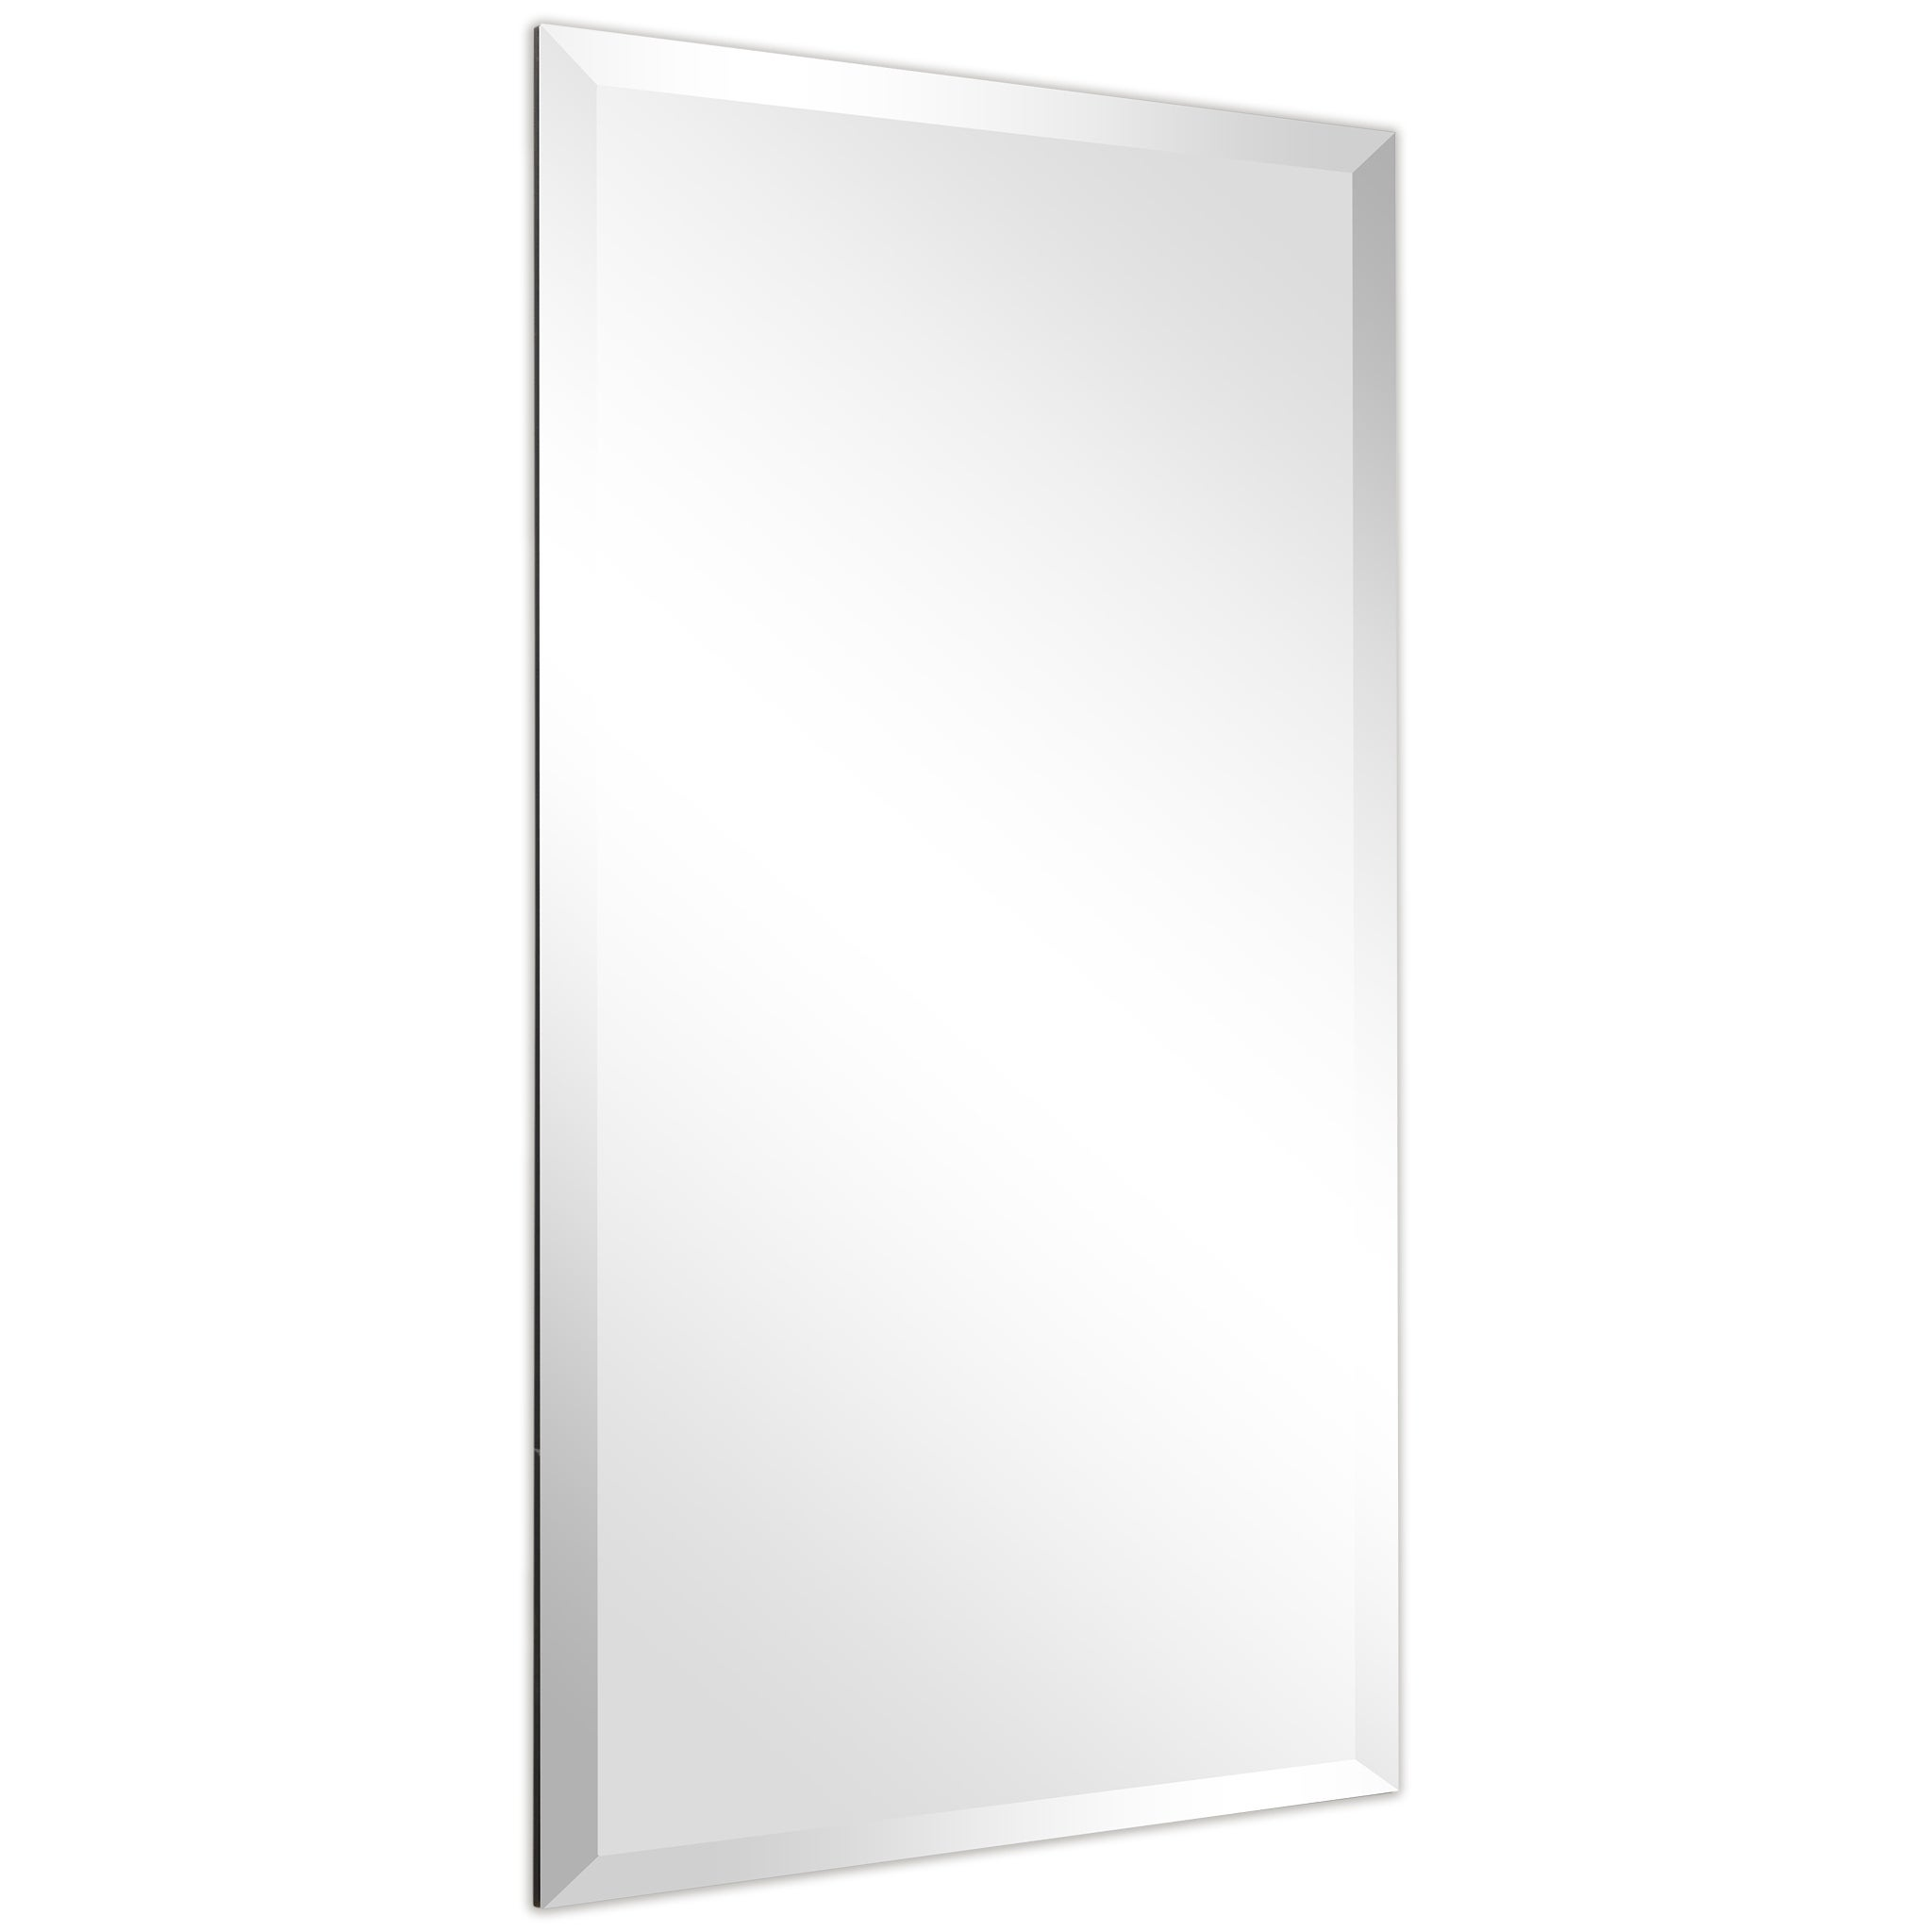 Picture of: Bathroom 20 Inch X 28 Inch Small Bedroom Rectangular Mirror The Better Bevel Frameless Rectangle Wall Mirror Vanity Talkingbread Co Il